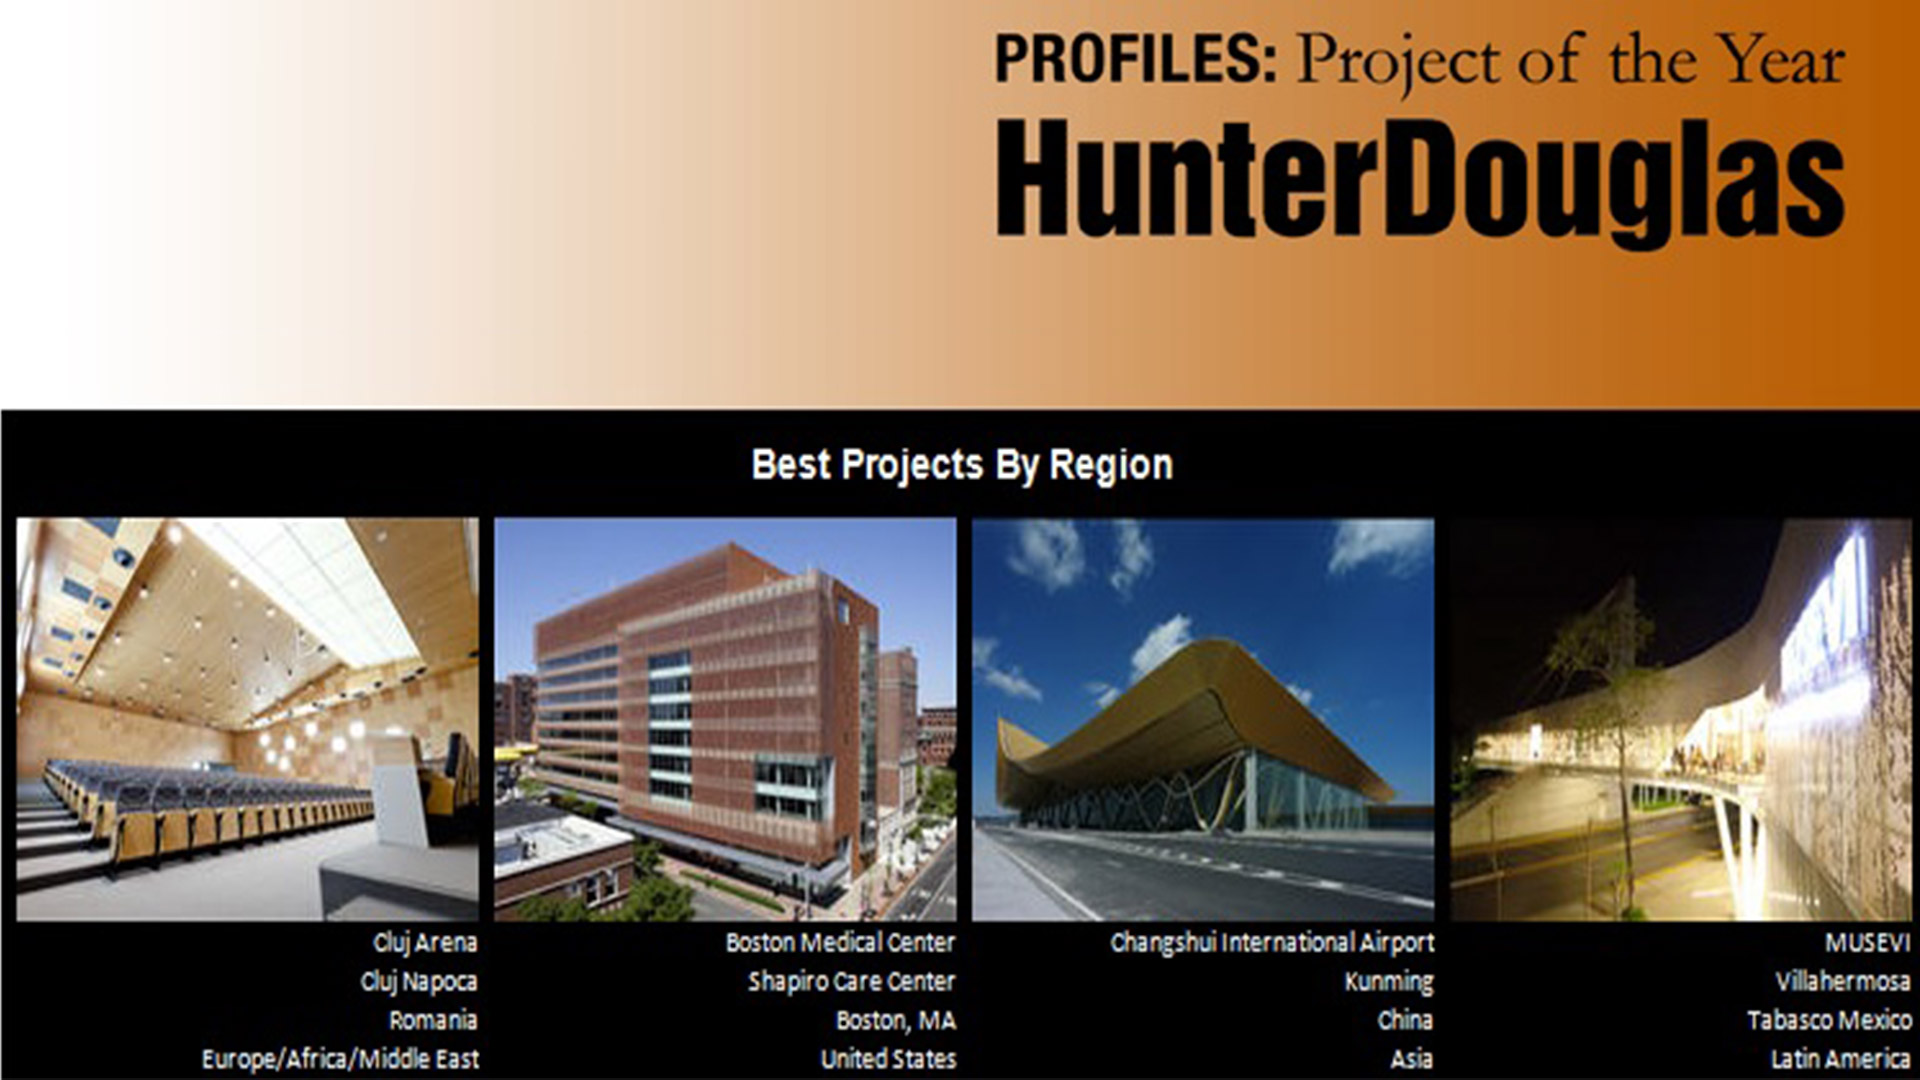 Cluj Arena, Project of the Year,  HunterDouglas, 2011